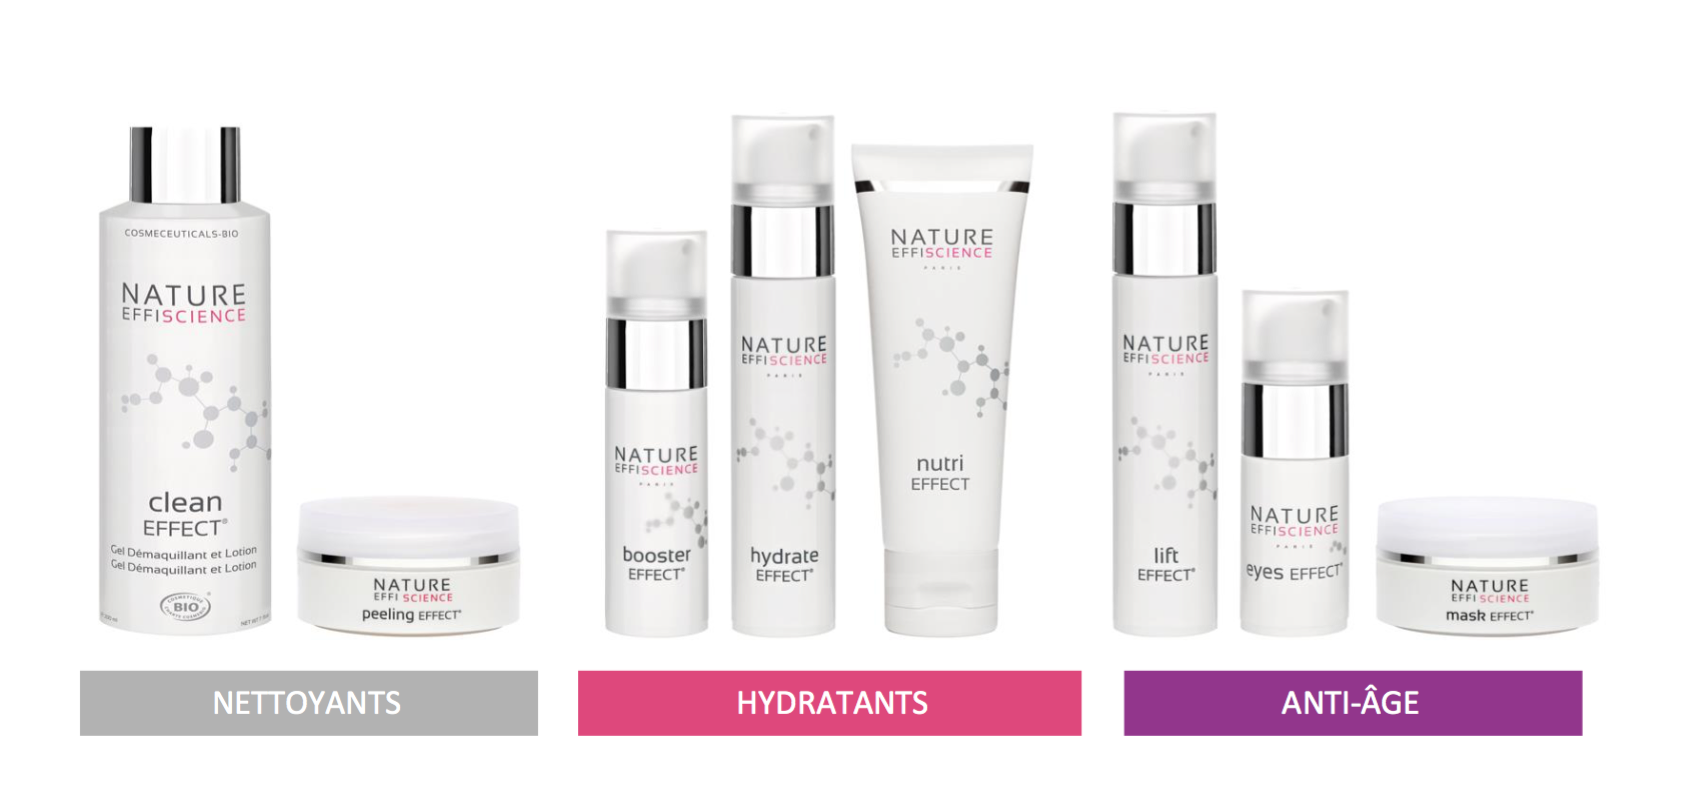 Gamme nature effiscience